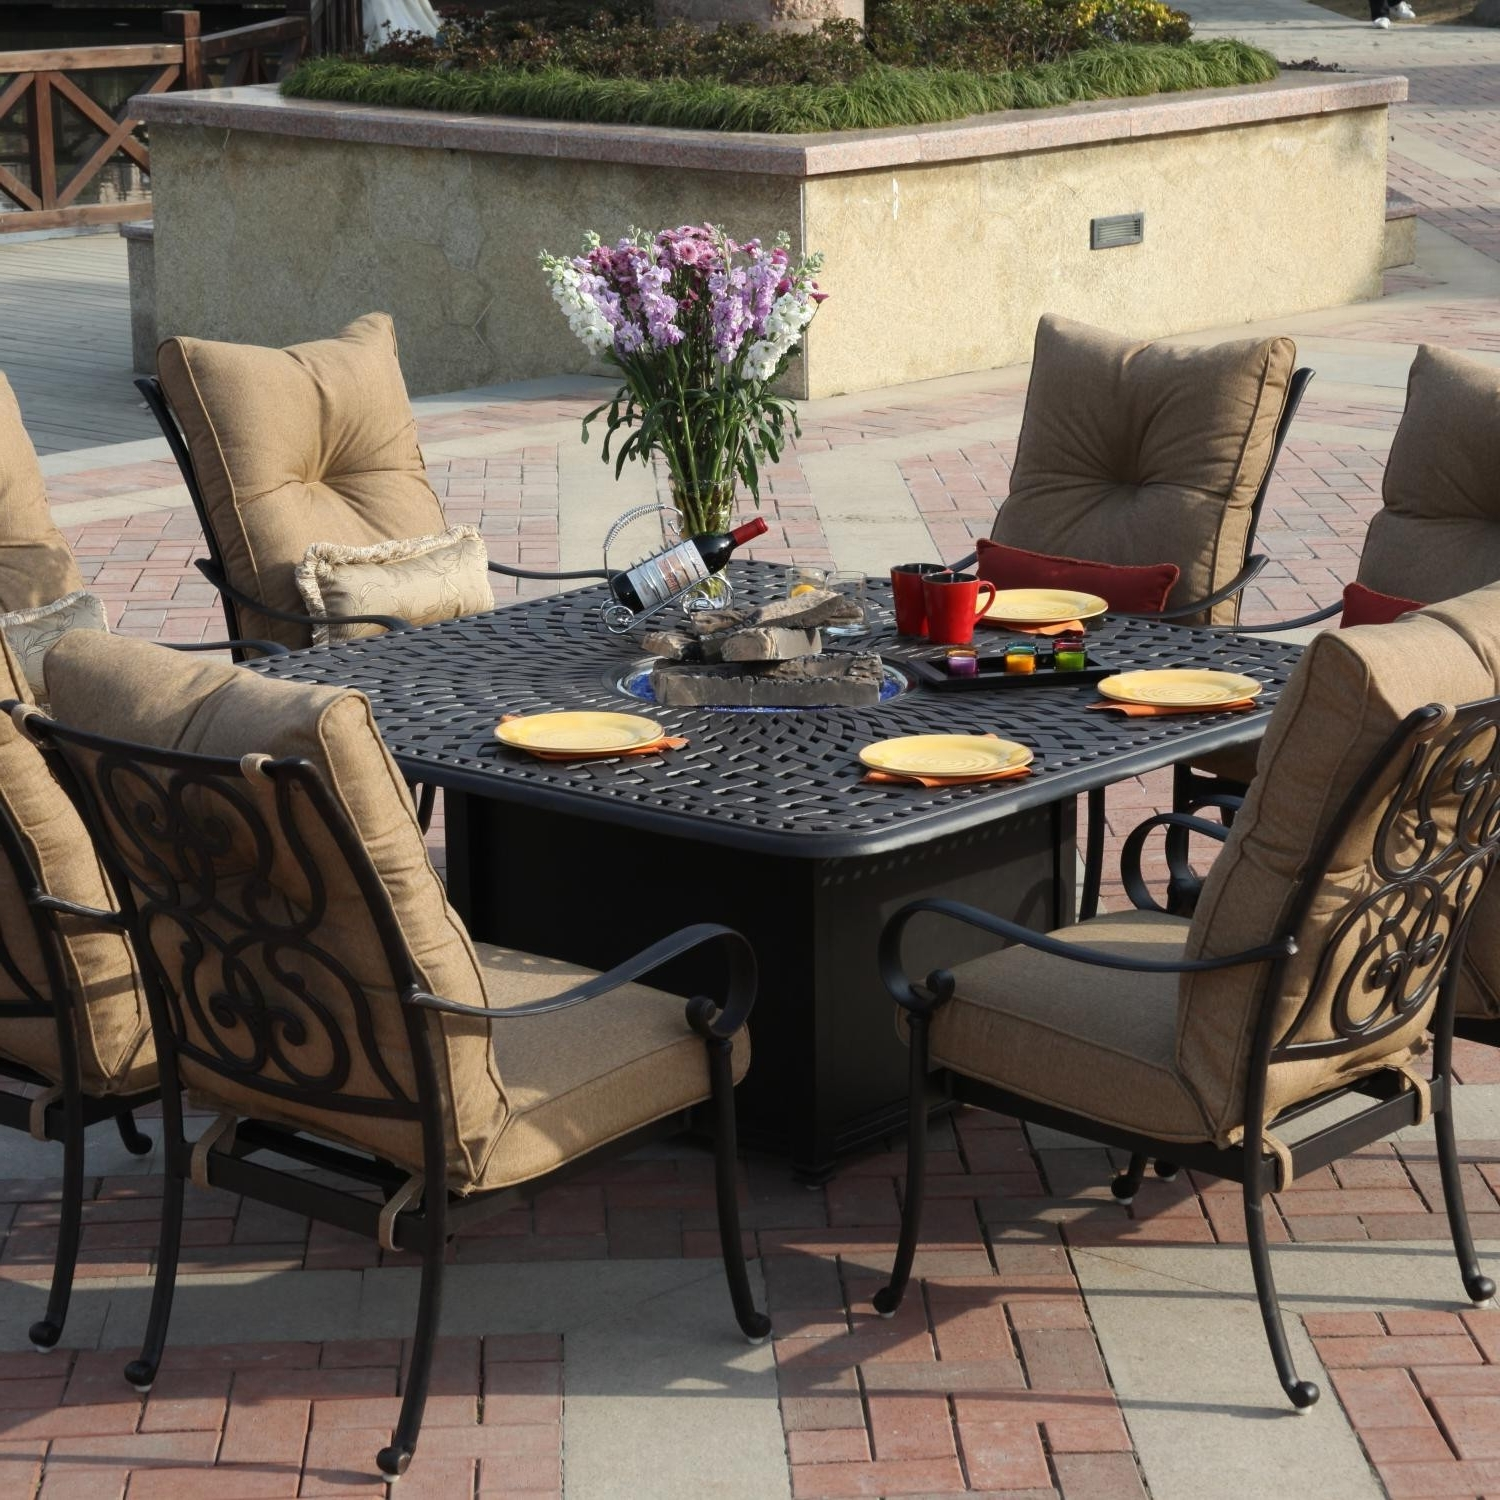 New Wicker Patio Sets With Fire Pit Conversation Sets Fire Pit Table In Most Recent Patio Conversation Sets With Fire Pit Table (View 10 of 15)